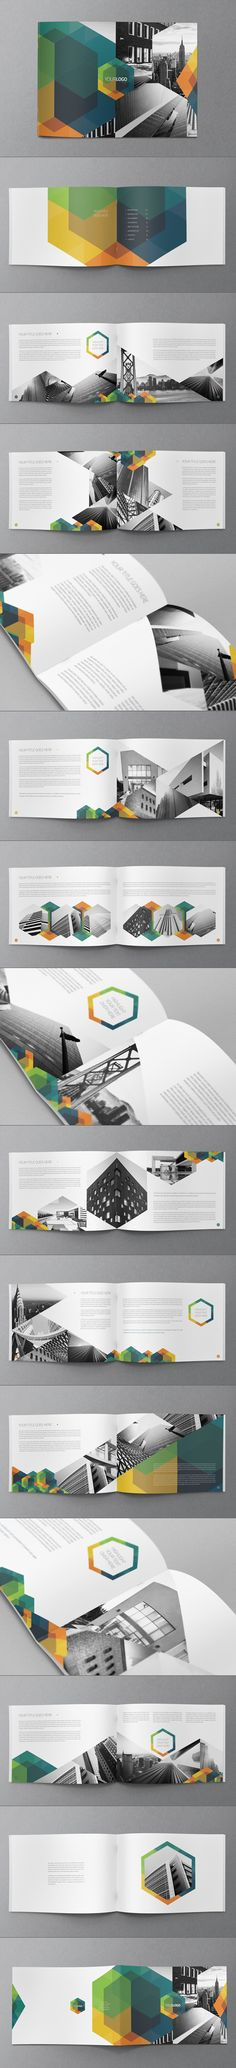 Geometric #brochure or #booklet design template. I love the repeating hexagon.